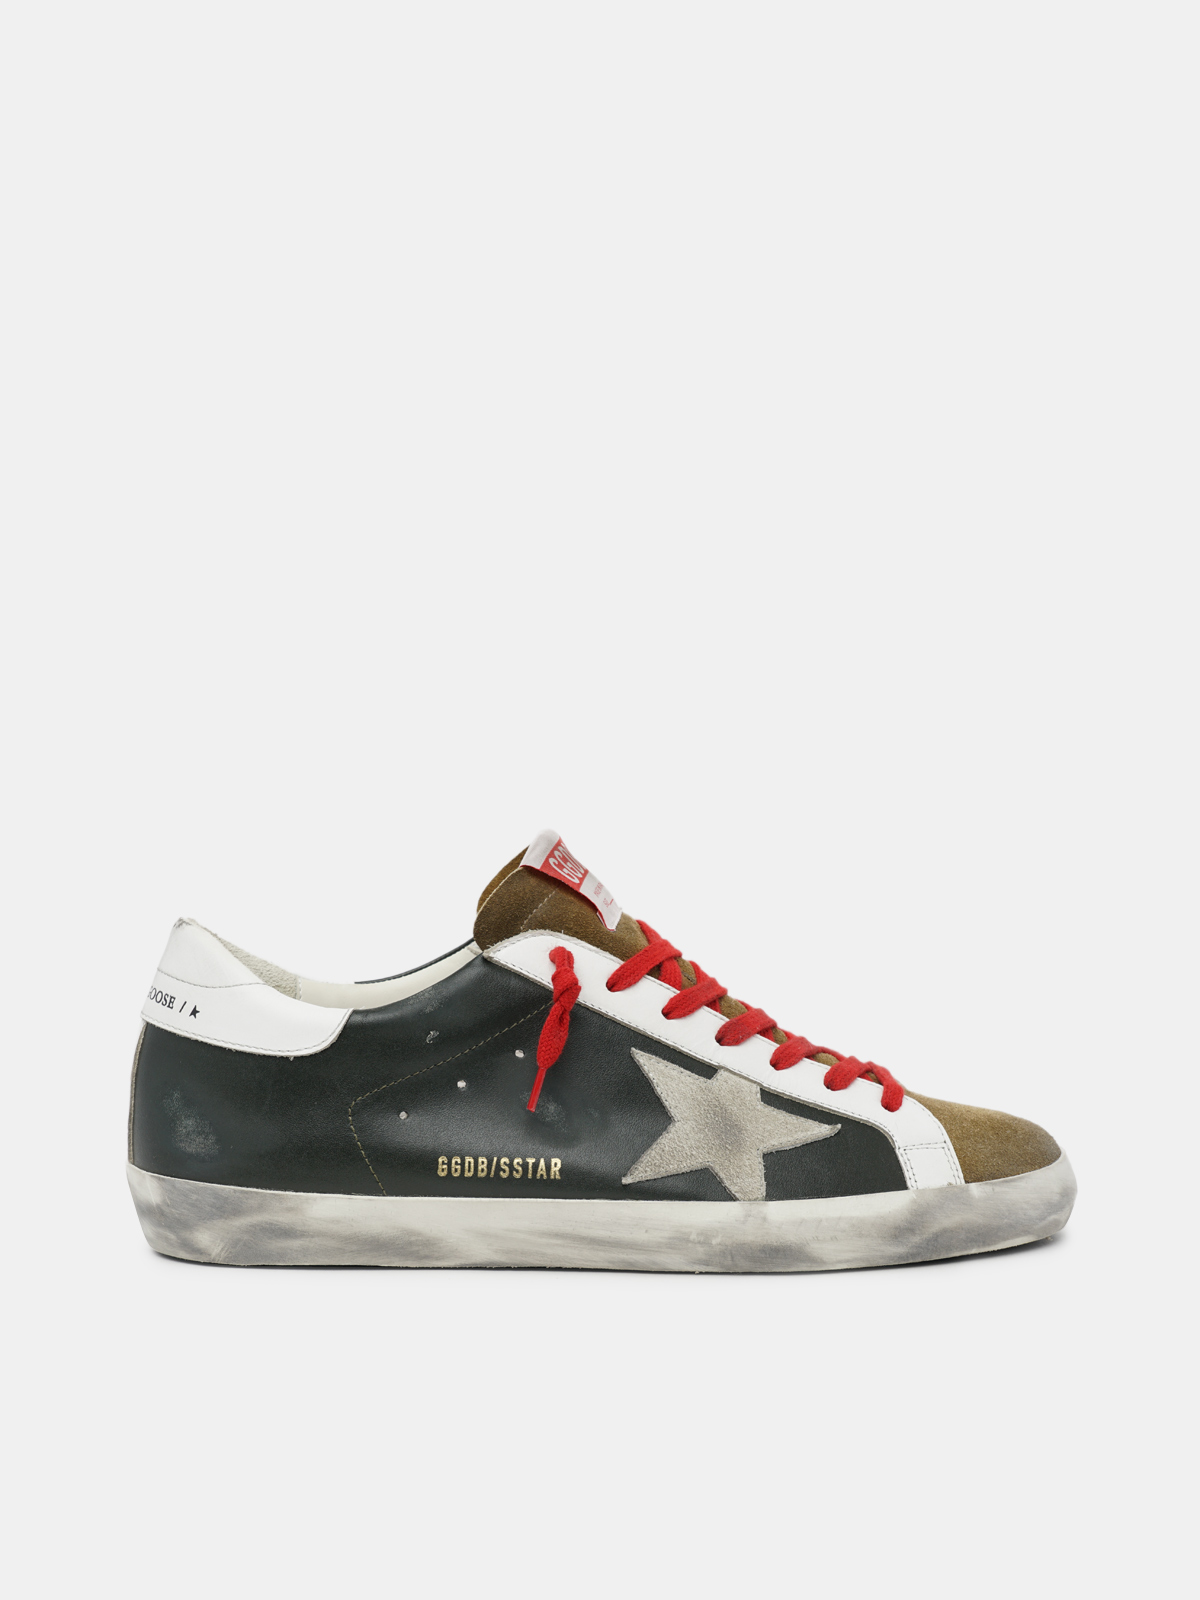 Golden Goose - Super-Star sneakers in black leather with suede insert in